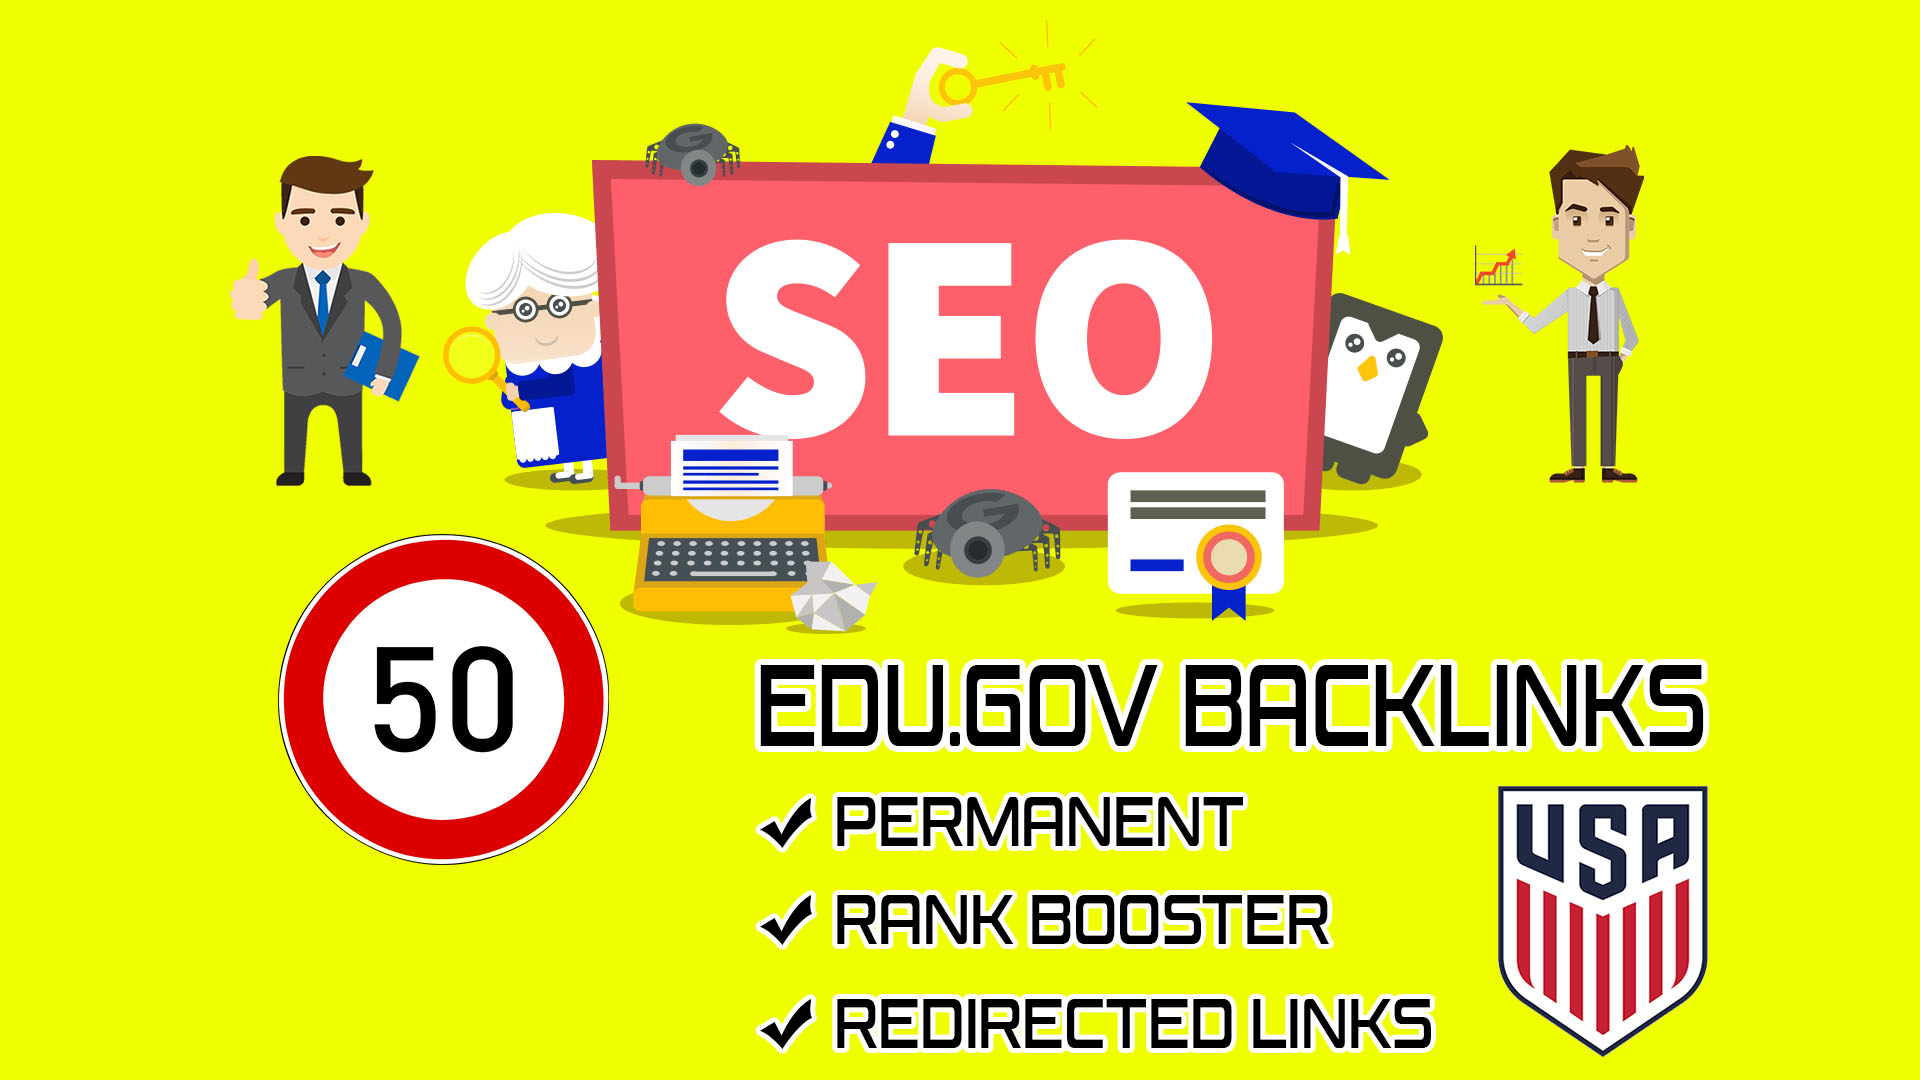 Provide manual high DA google authority edu gov backlinks